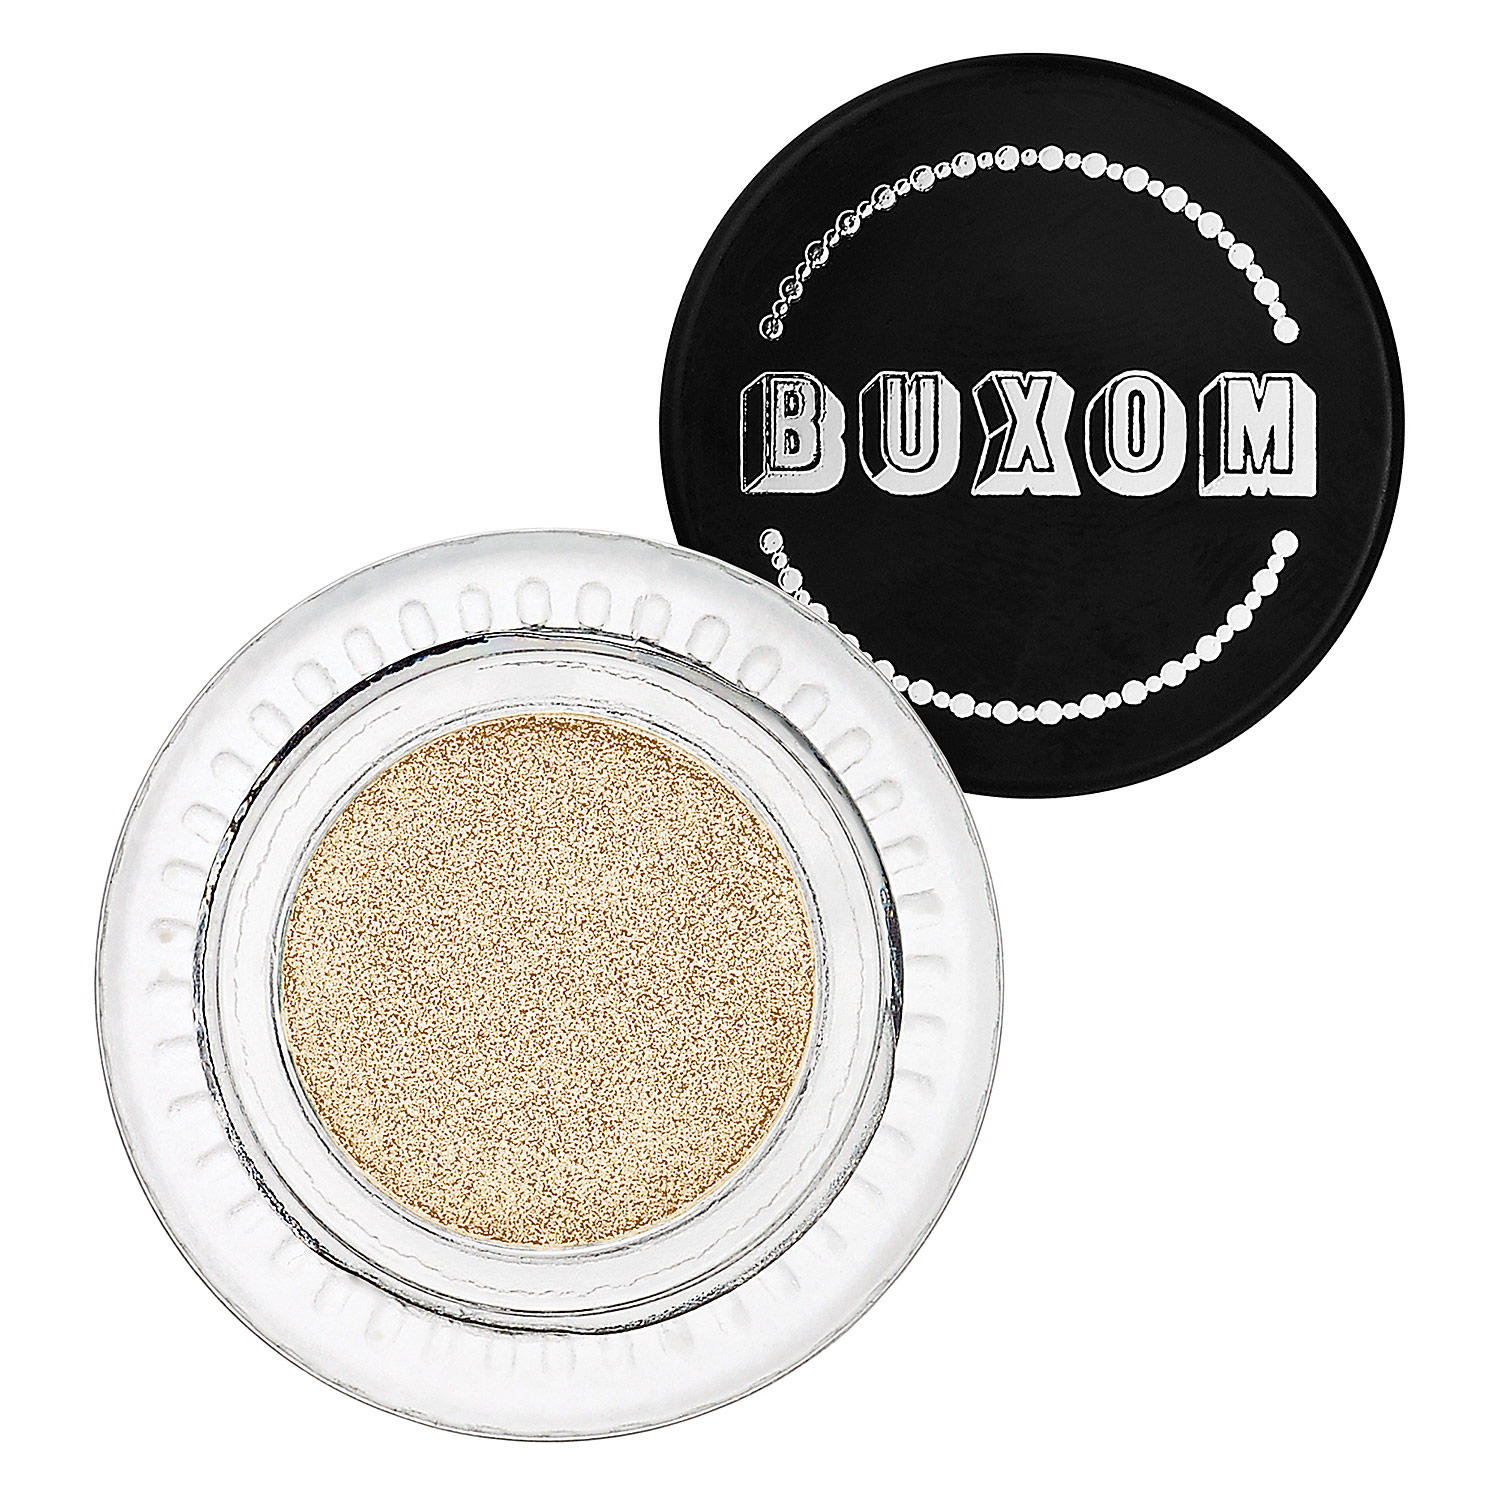 Buxom Stay-There Eyeshadow Poodle